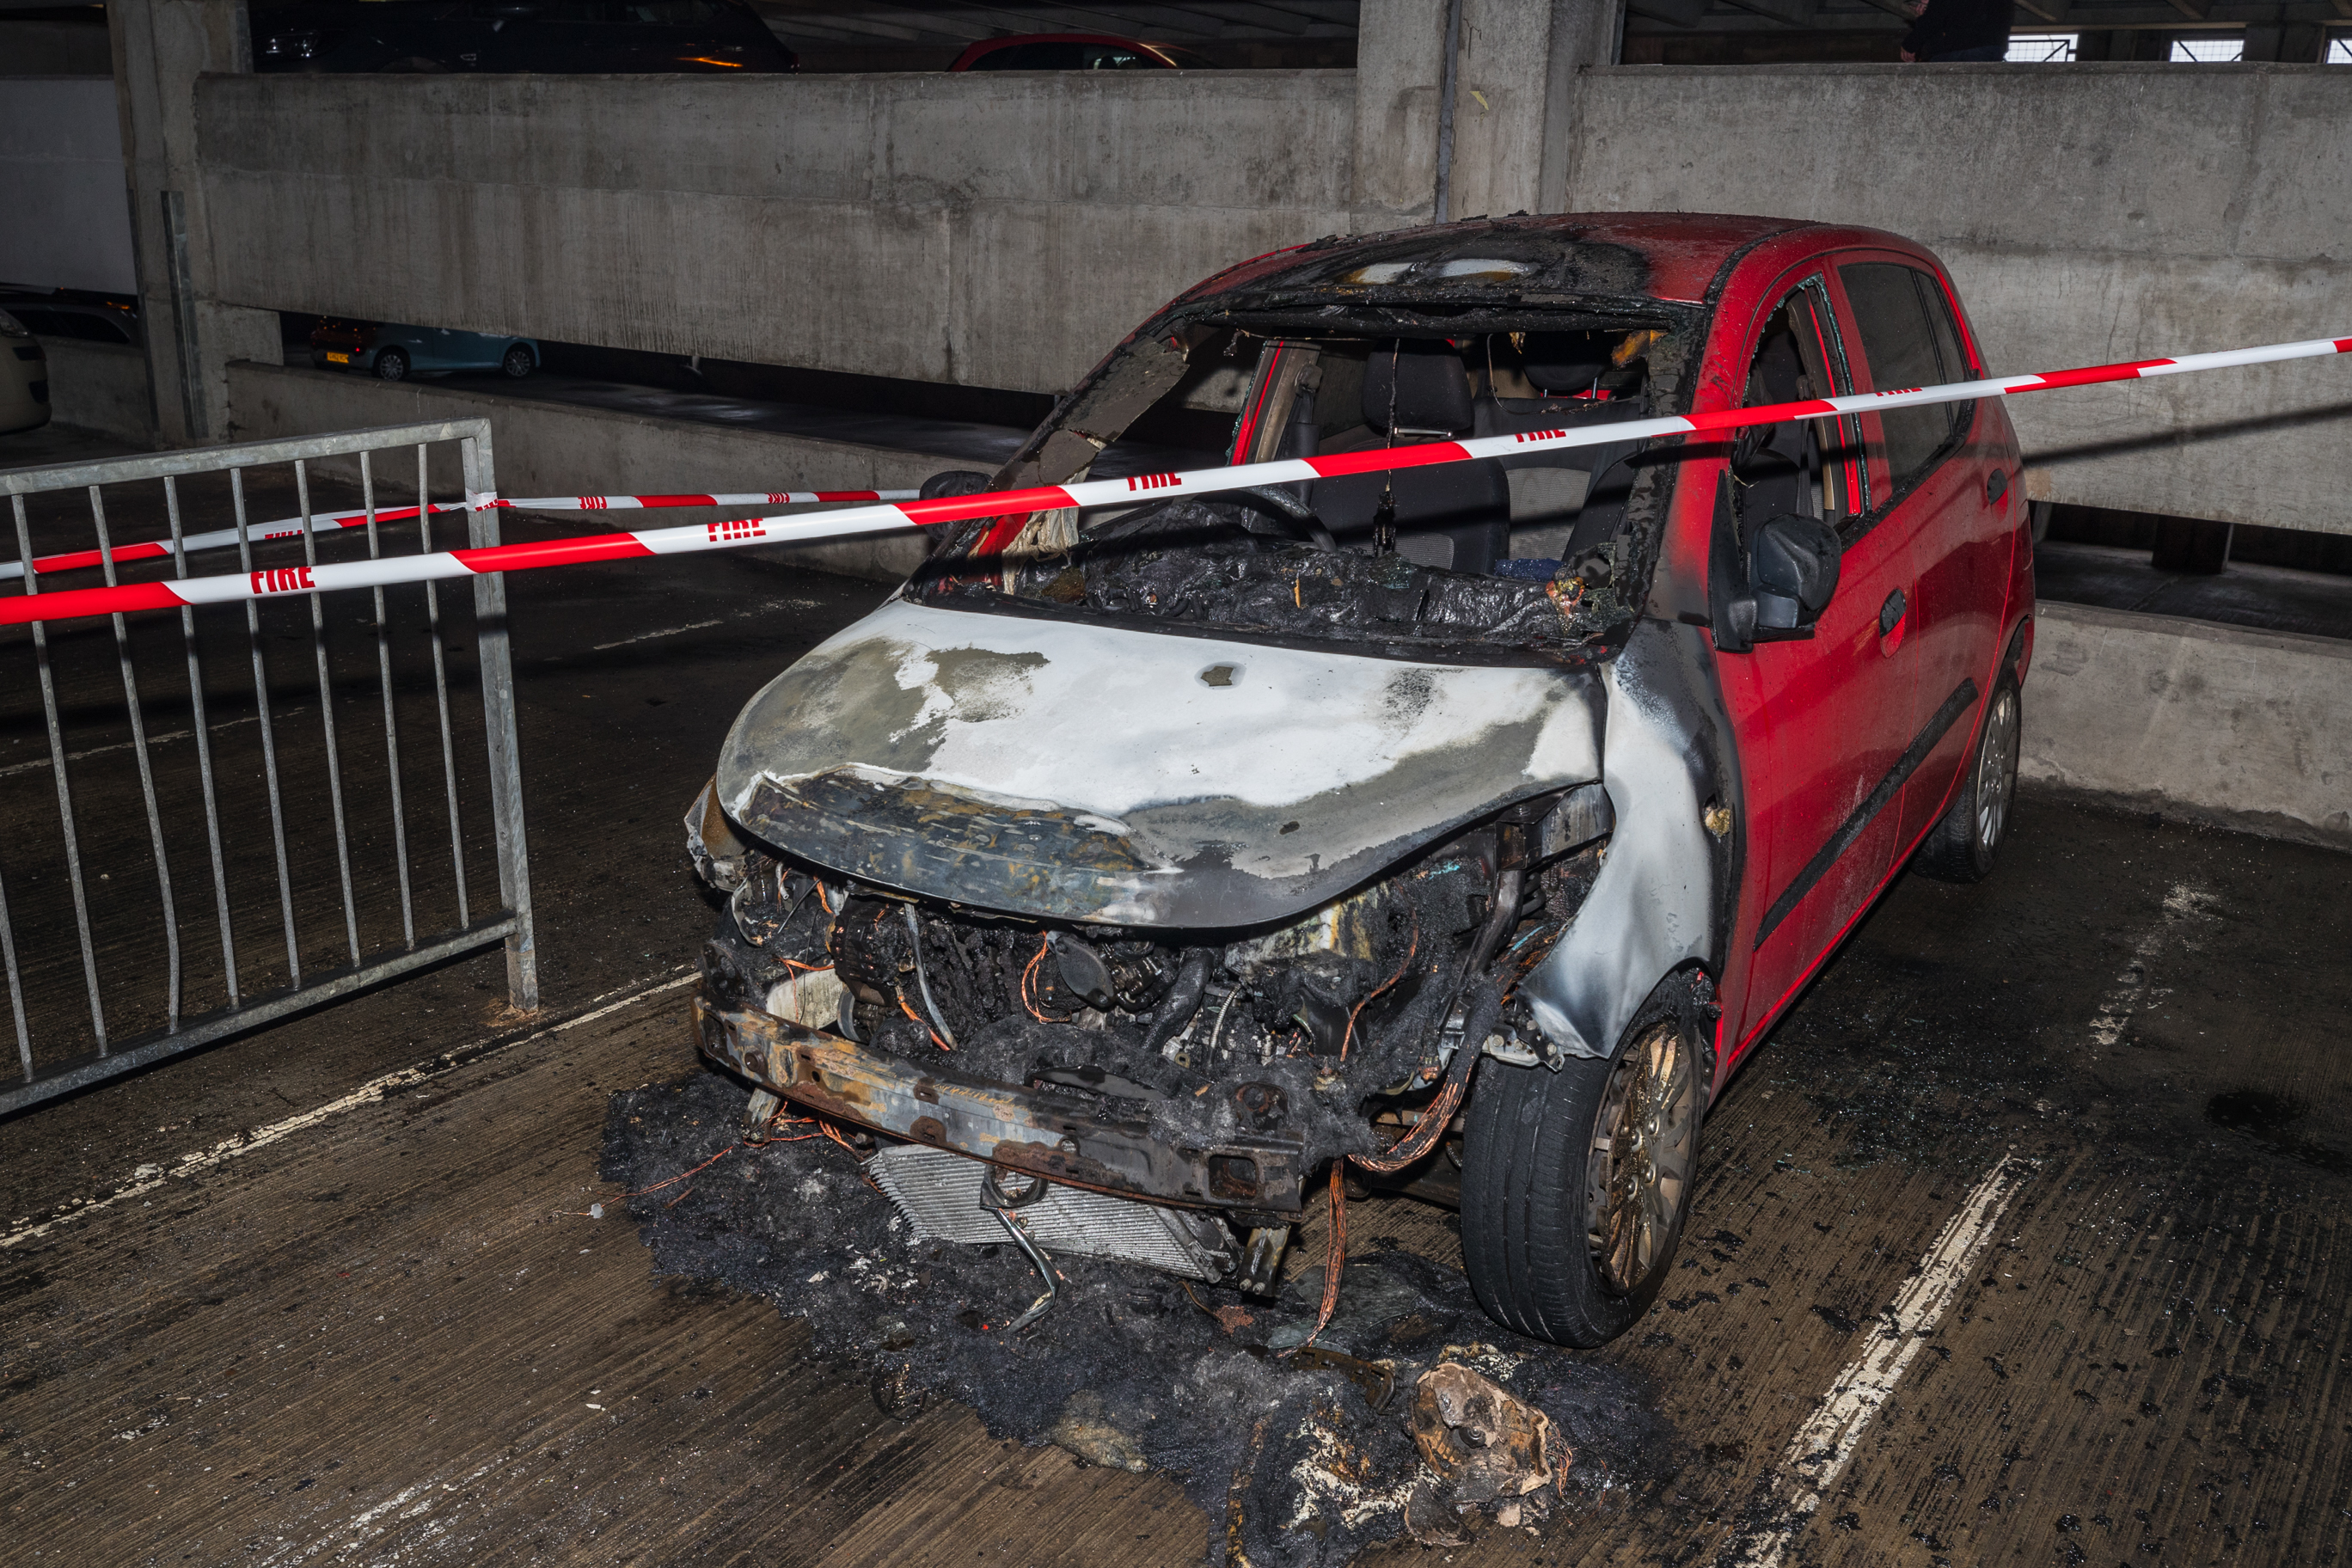 The car which burst into flames in the St Giles Centre, multi storey car park, Elgin.